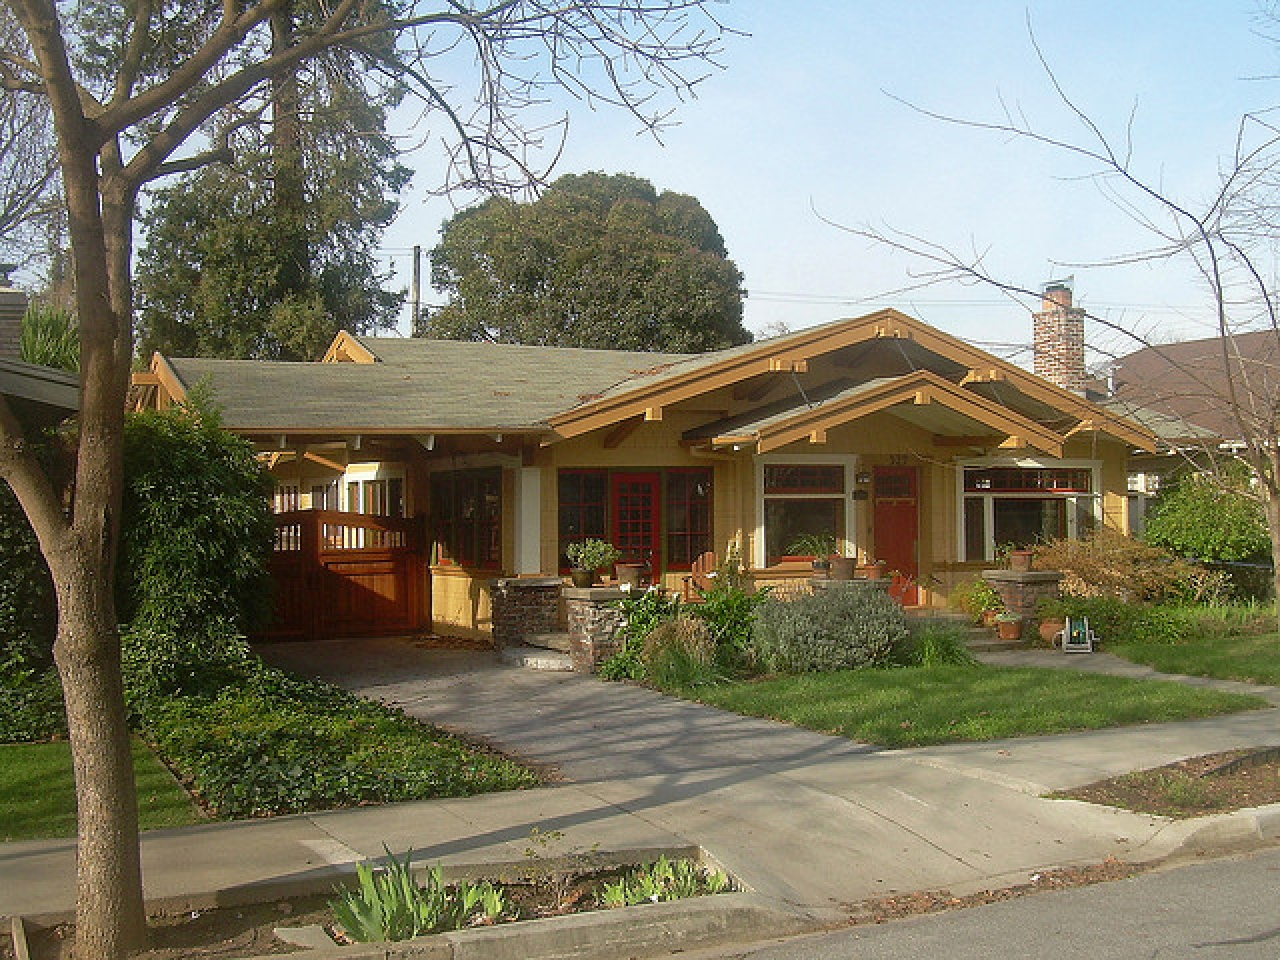 California craftsman bungalow style homes craftsman for Craftsman style homes for sale in california